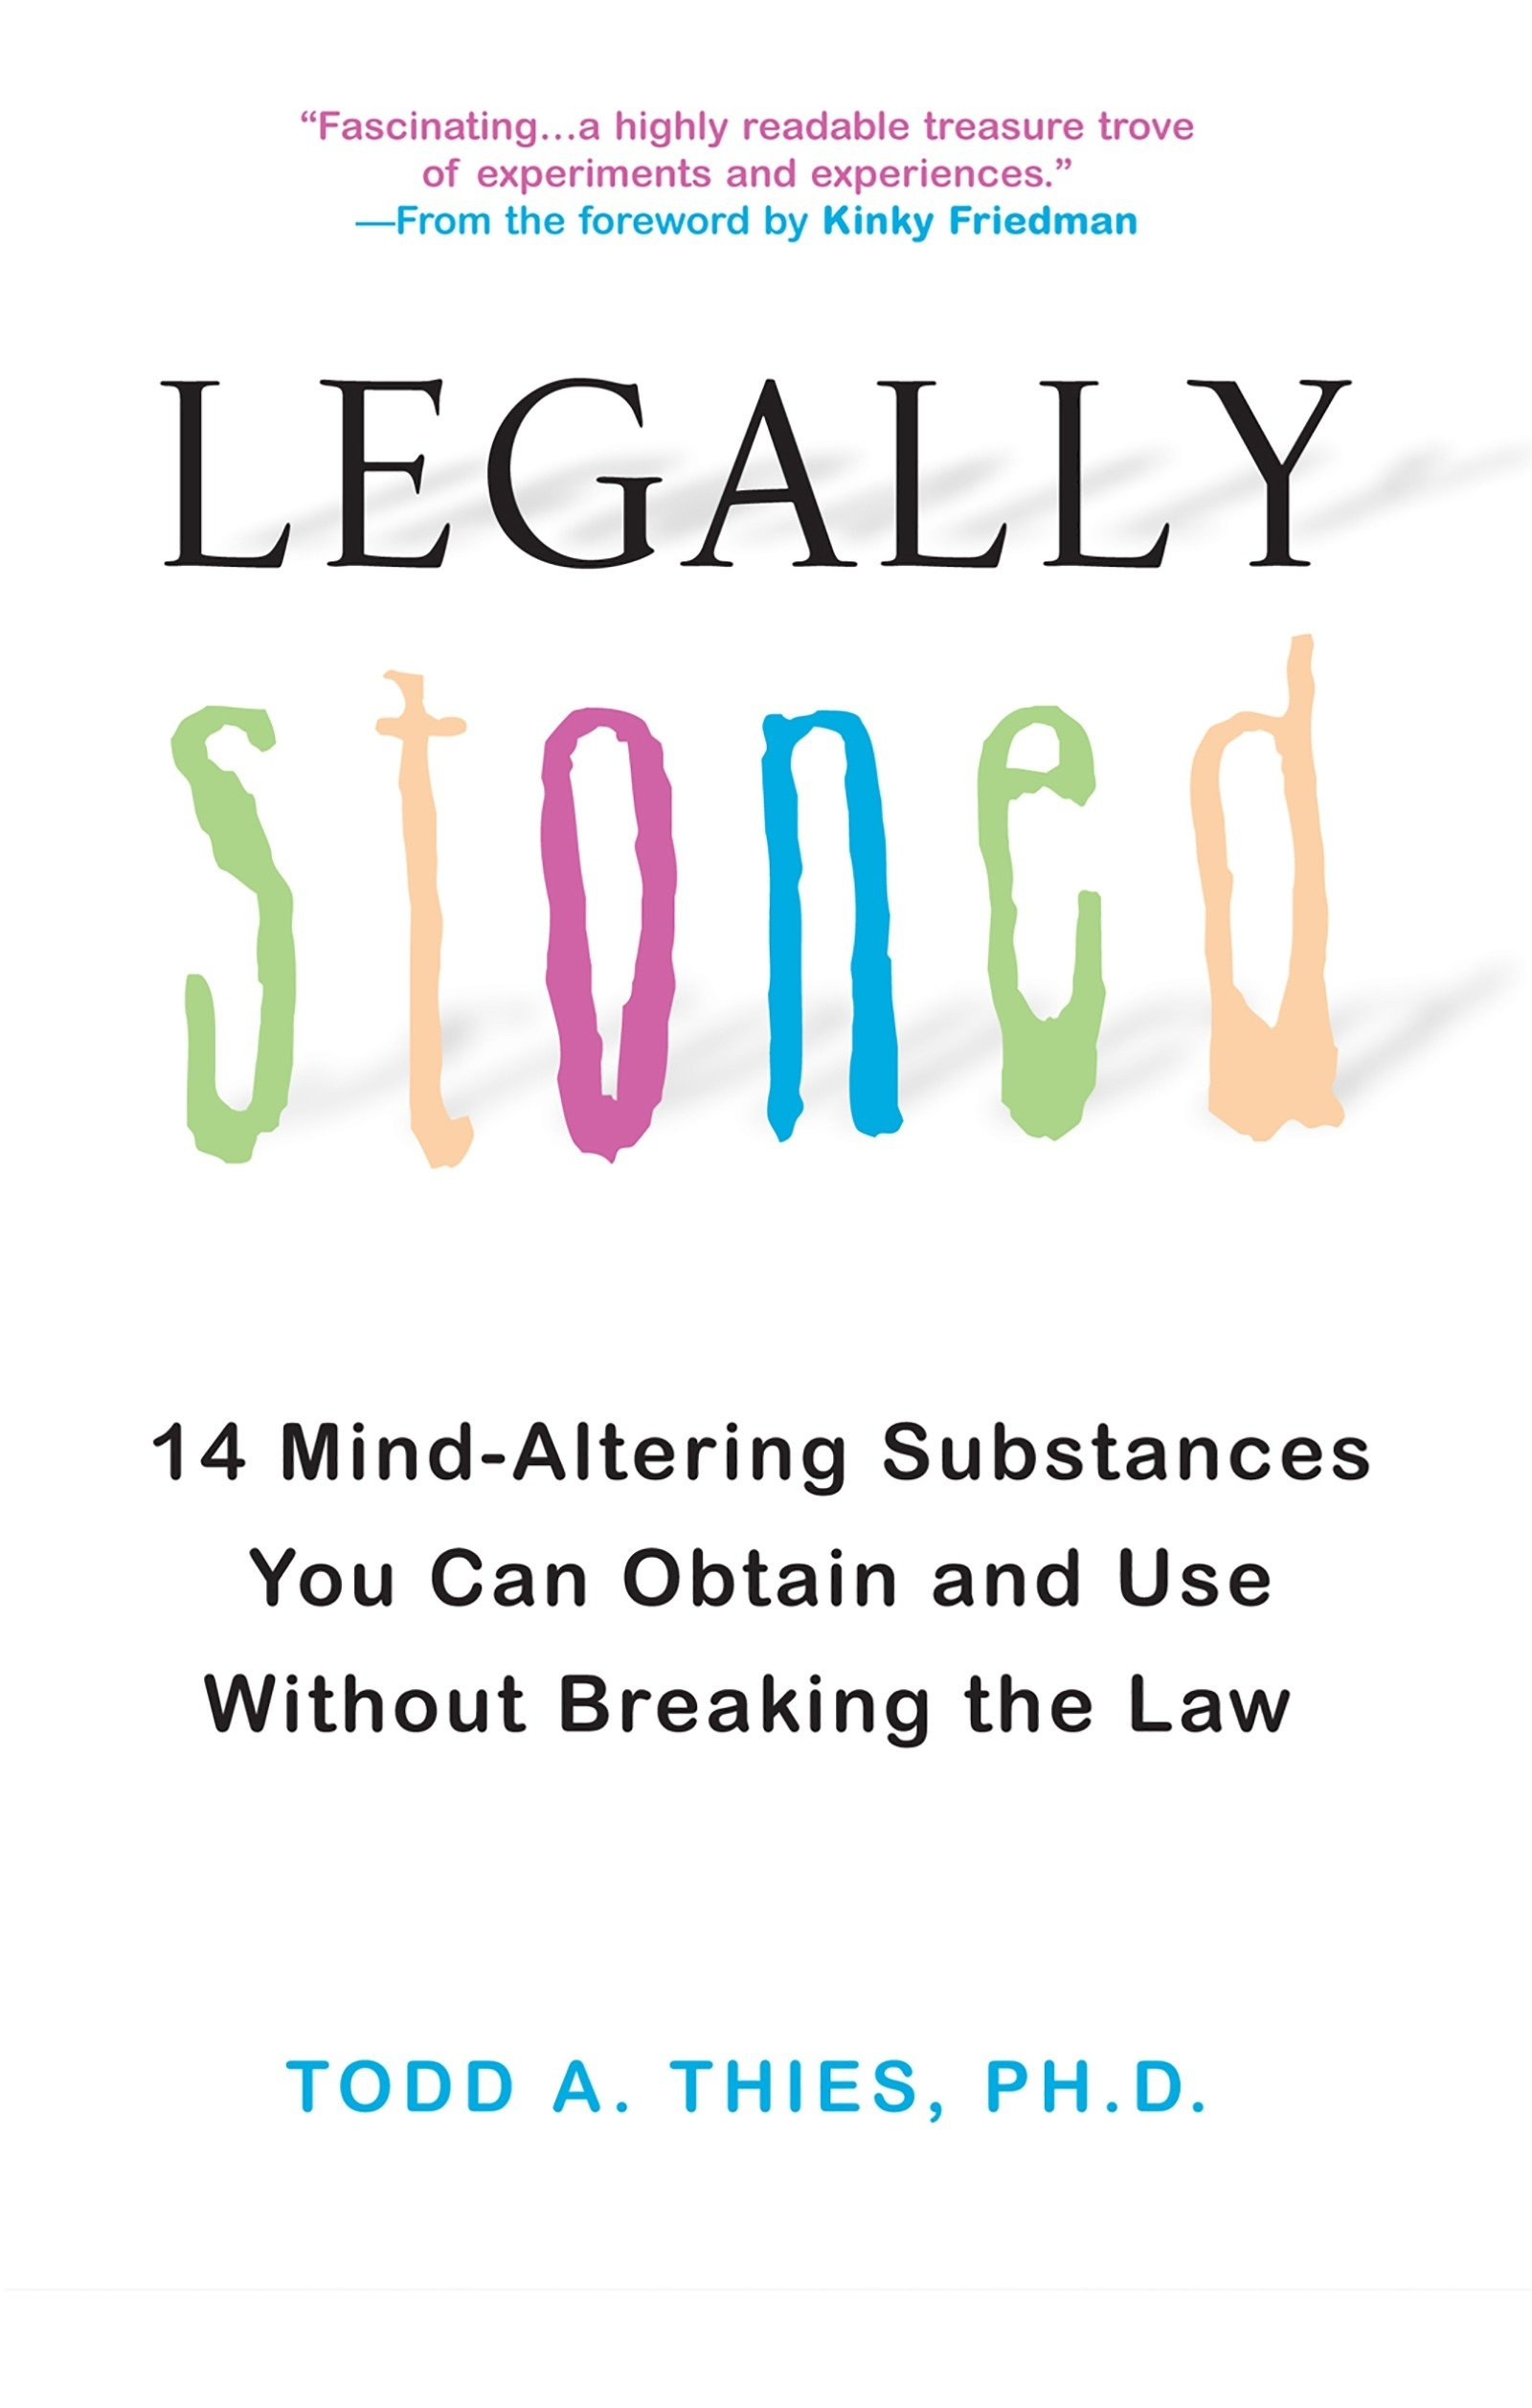 Legally stoned 14 mind altering substances you can obtain and use legally stoned 14 mind altering substances you can obtain and use without breaking the law todd a thies phd 9780806531113 amazon books fandeluxe Choice Image